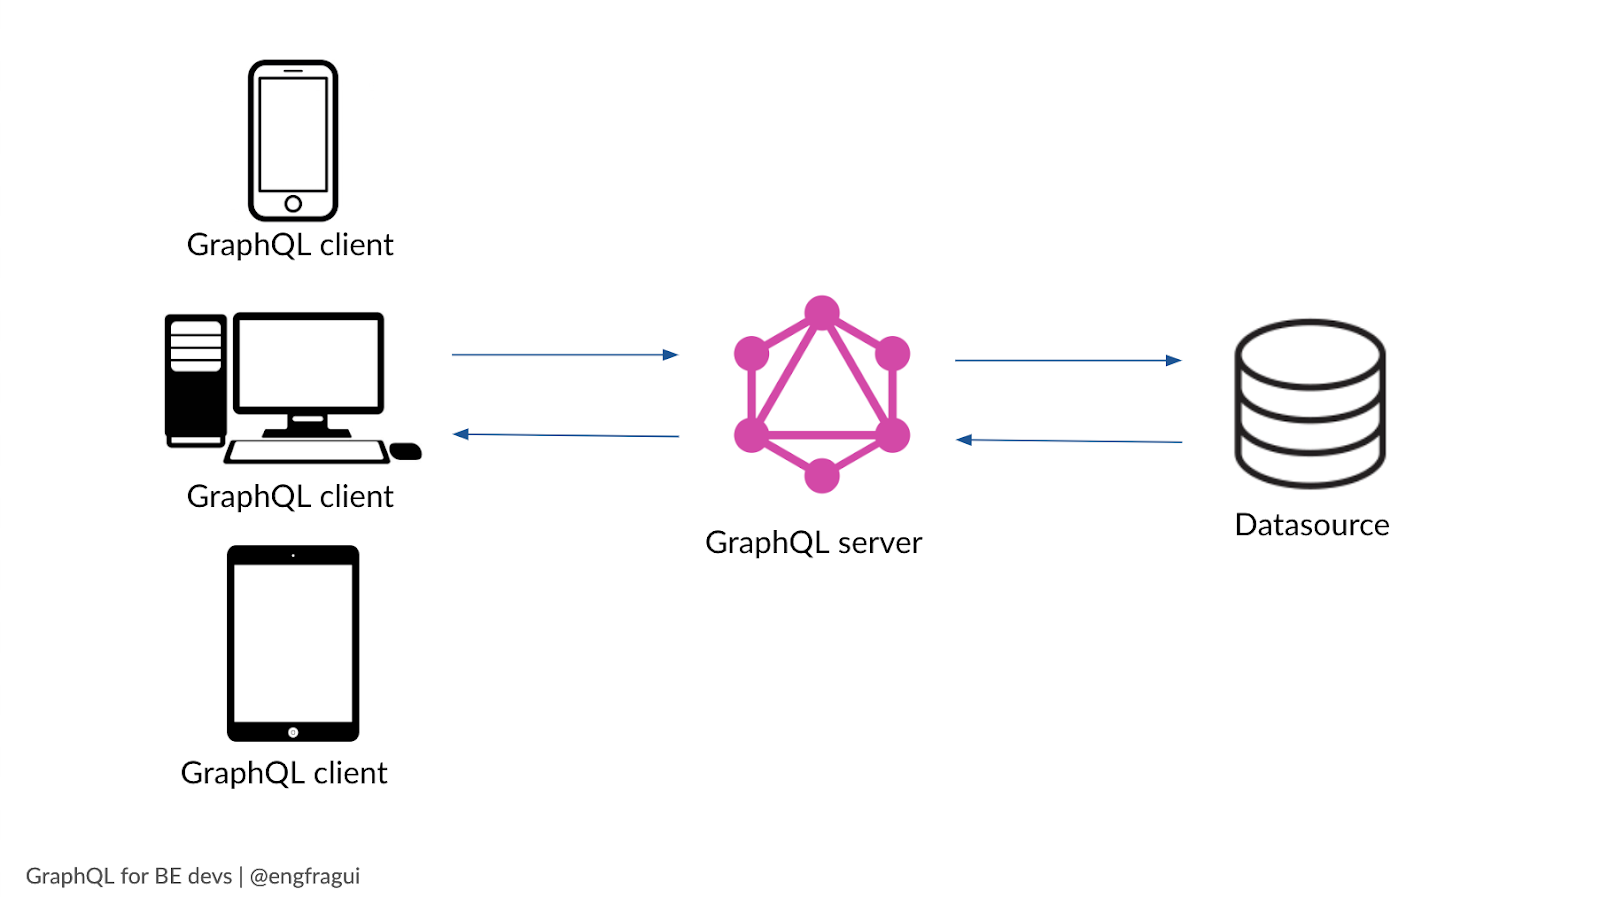 GraphQL architecture graphic - graphQL client, server, and datasouce connection